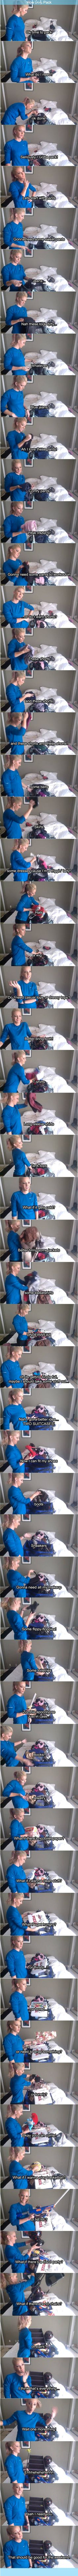 HAHA how girls pack by jenna marbles! (SUPER DUPER LONG PIN) However, as a girl who leaves for vacation this week... this is accurate.